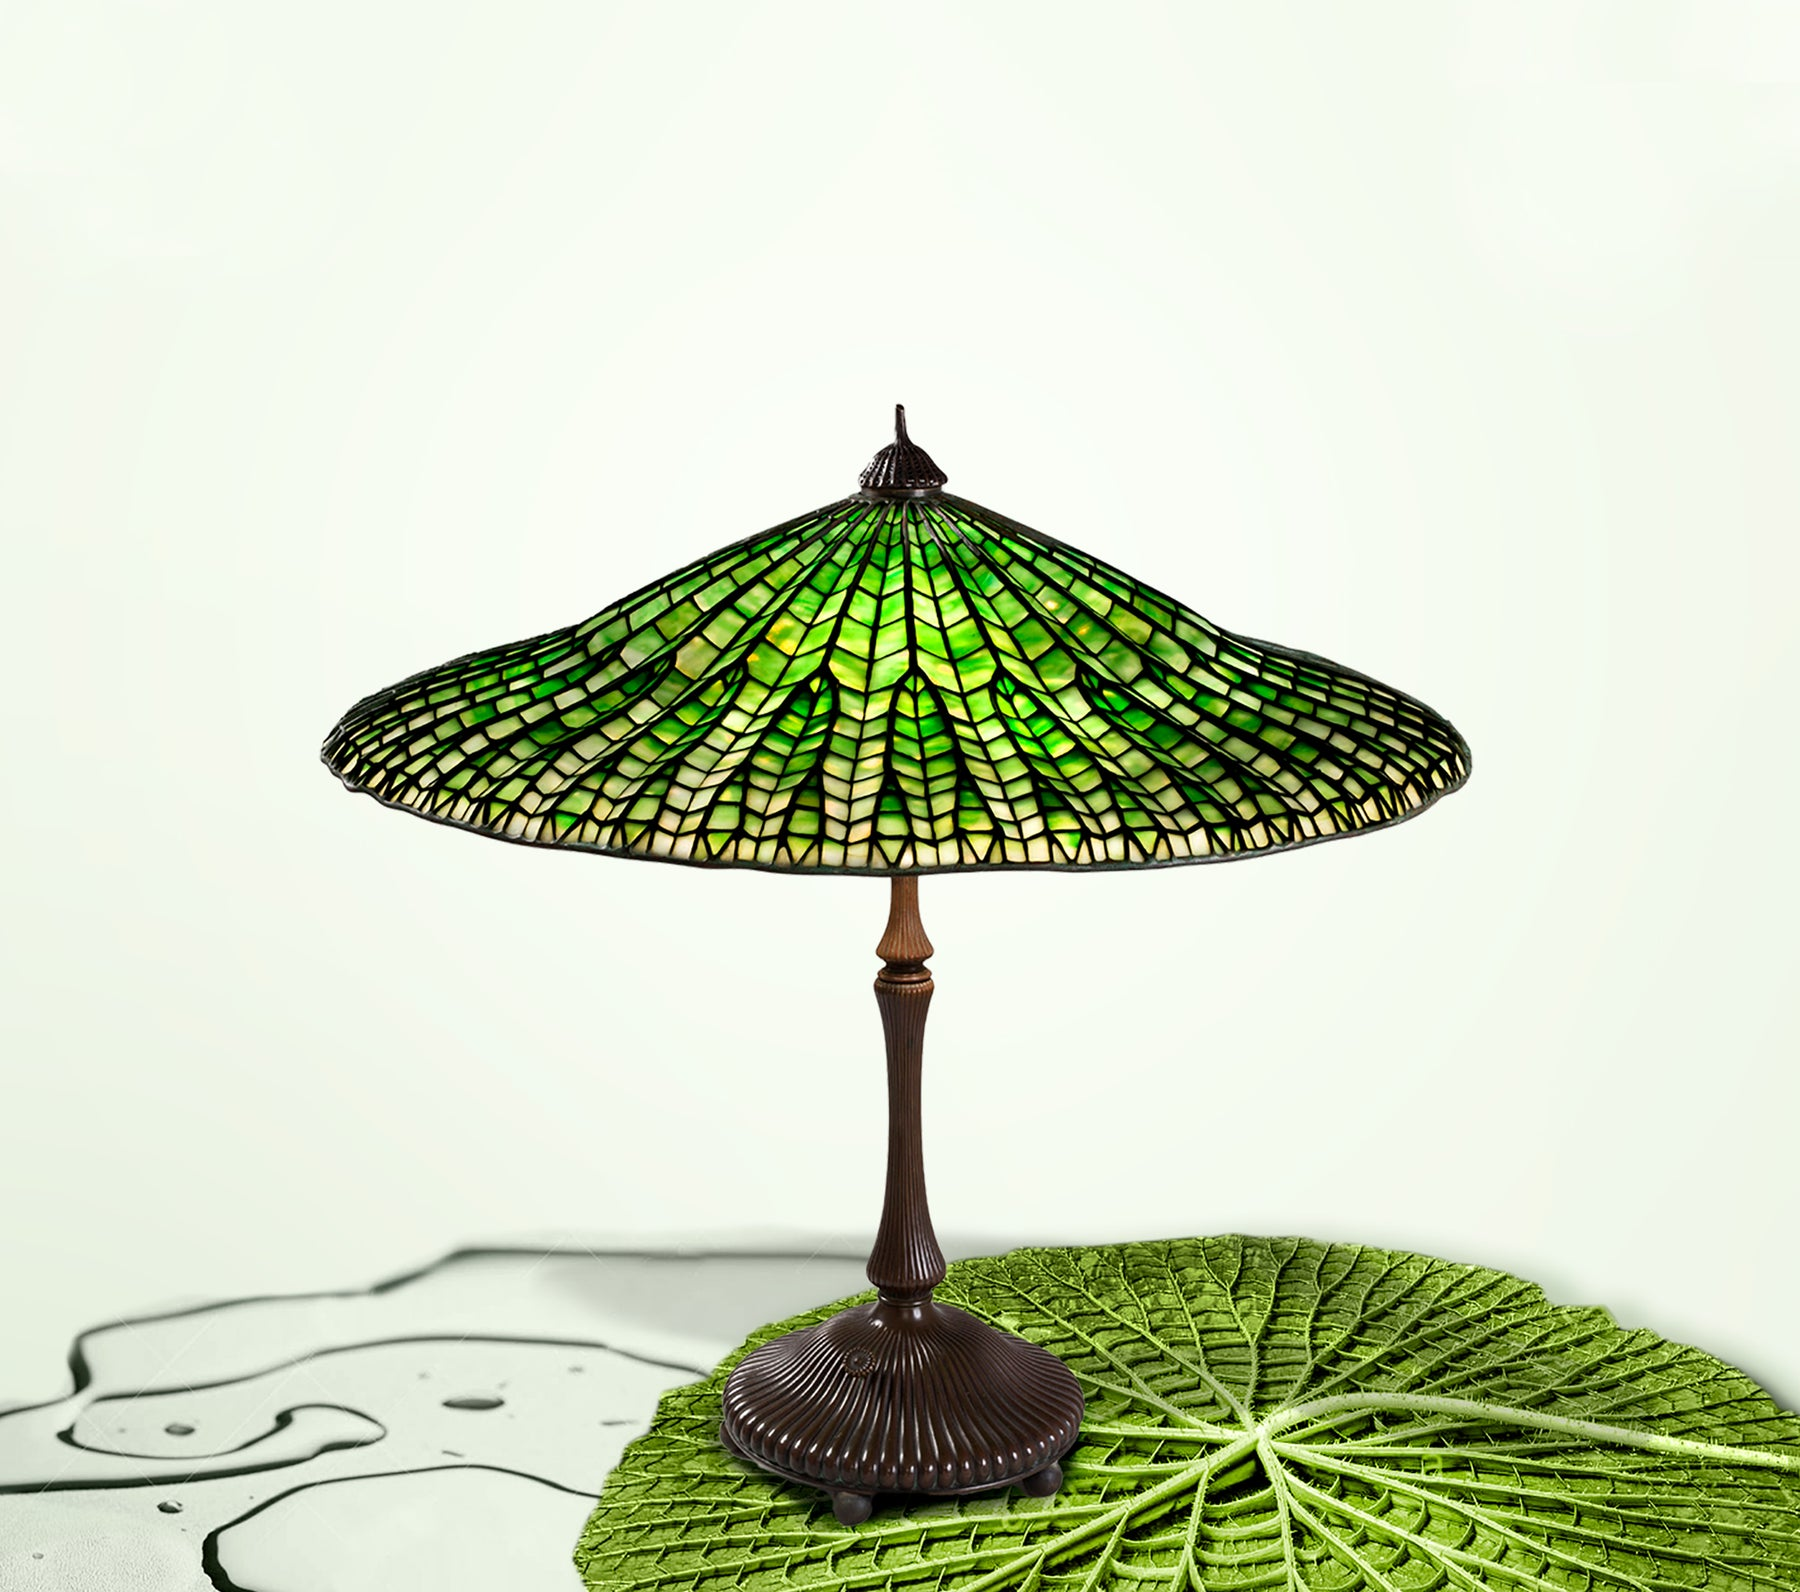 Collectors' Guide: The 4 Distinct Styles Of Tiffany Lamps